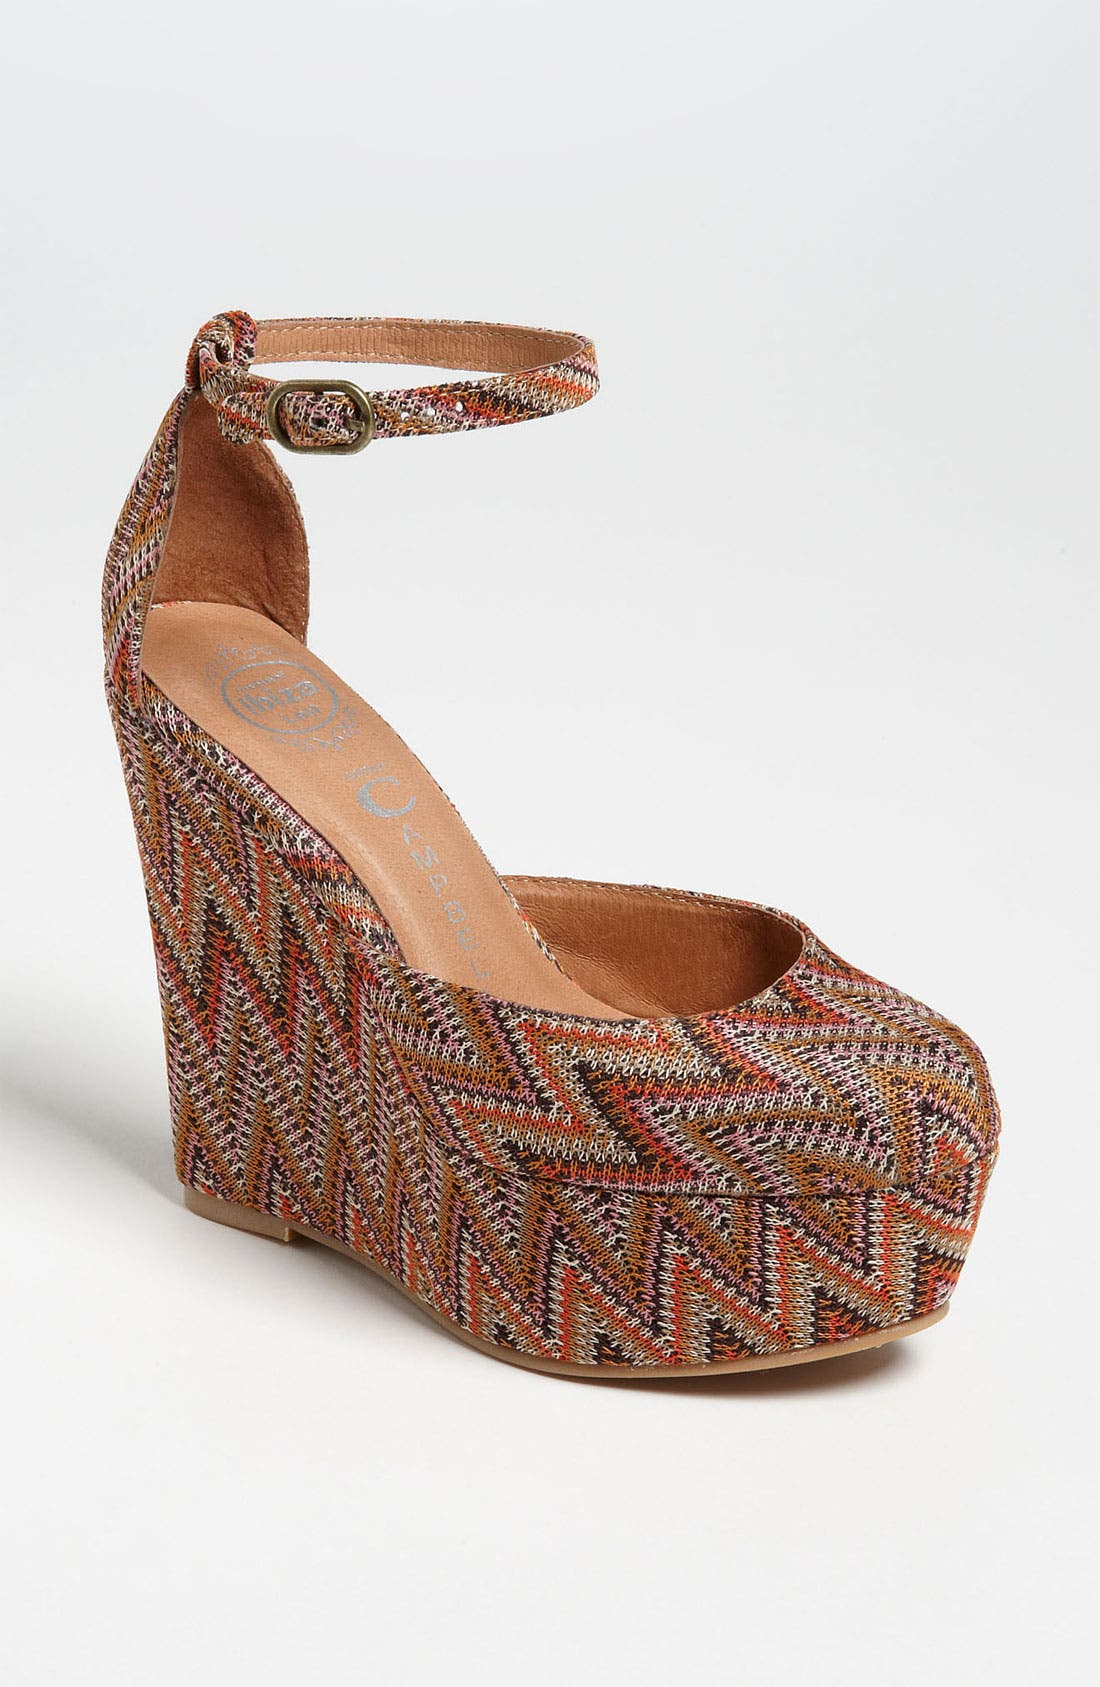 Main Image - Jeffrey Campbell 'Bette' Wedge